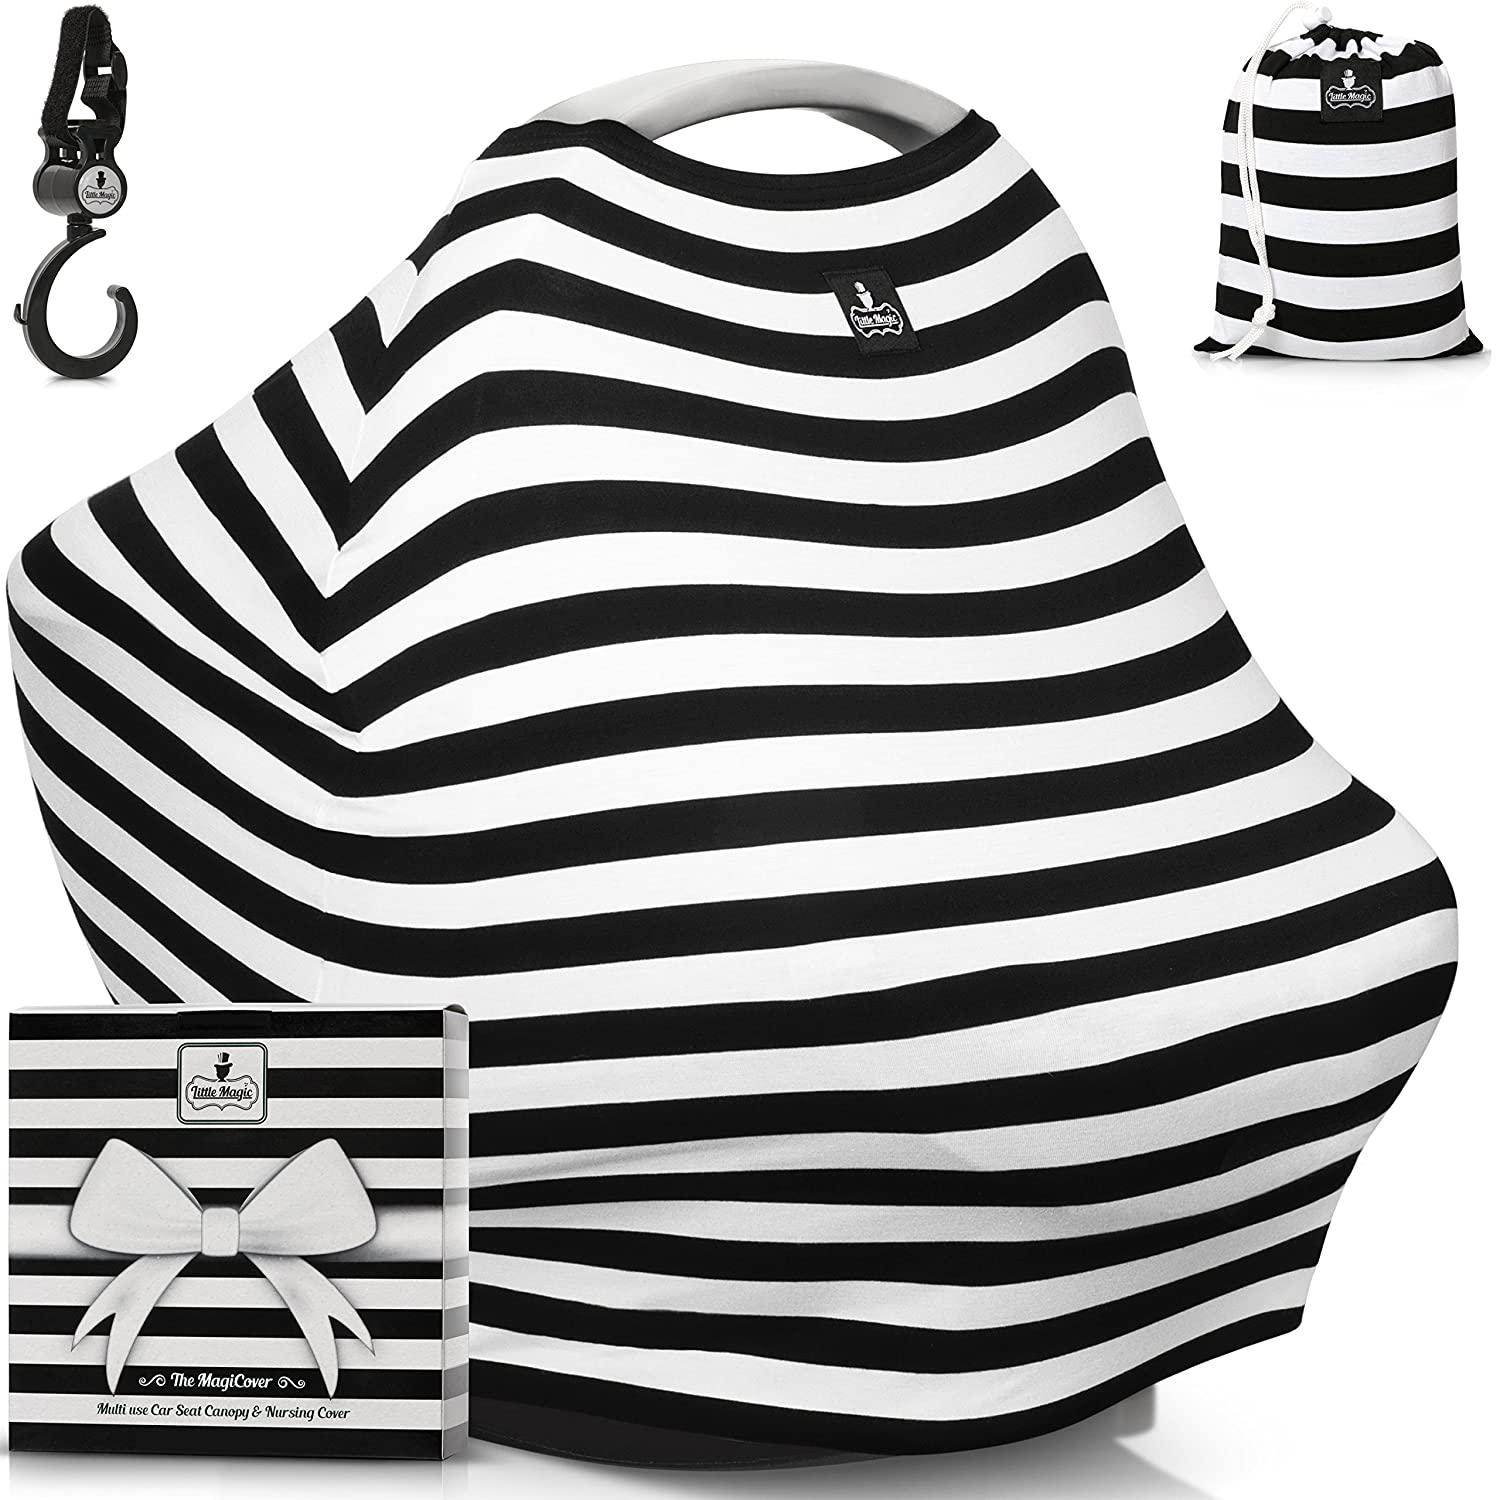 Amazon.com Baby Car Seat Canopy u0026 Multi-Use Nursing Cover - FREE GIFT BOX SET -  The MagiCover  by Little Magic Baby  sc 1 st  Amazon.com & Amazon.com: Baby Car Seat Canopy u0026 Multi-Use Nursing Cover - FREE ...